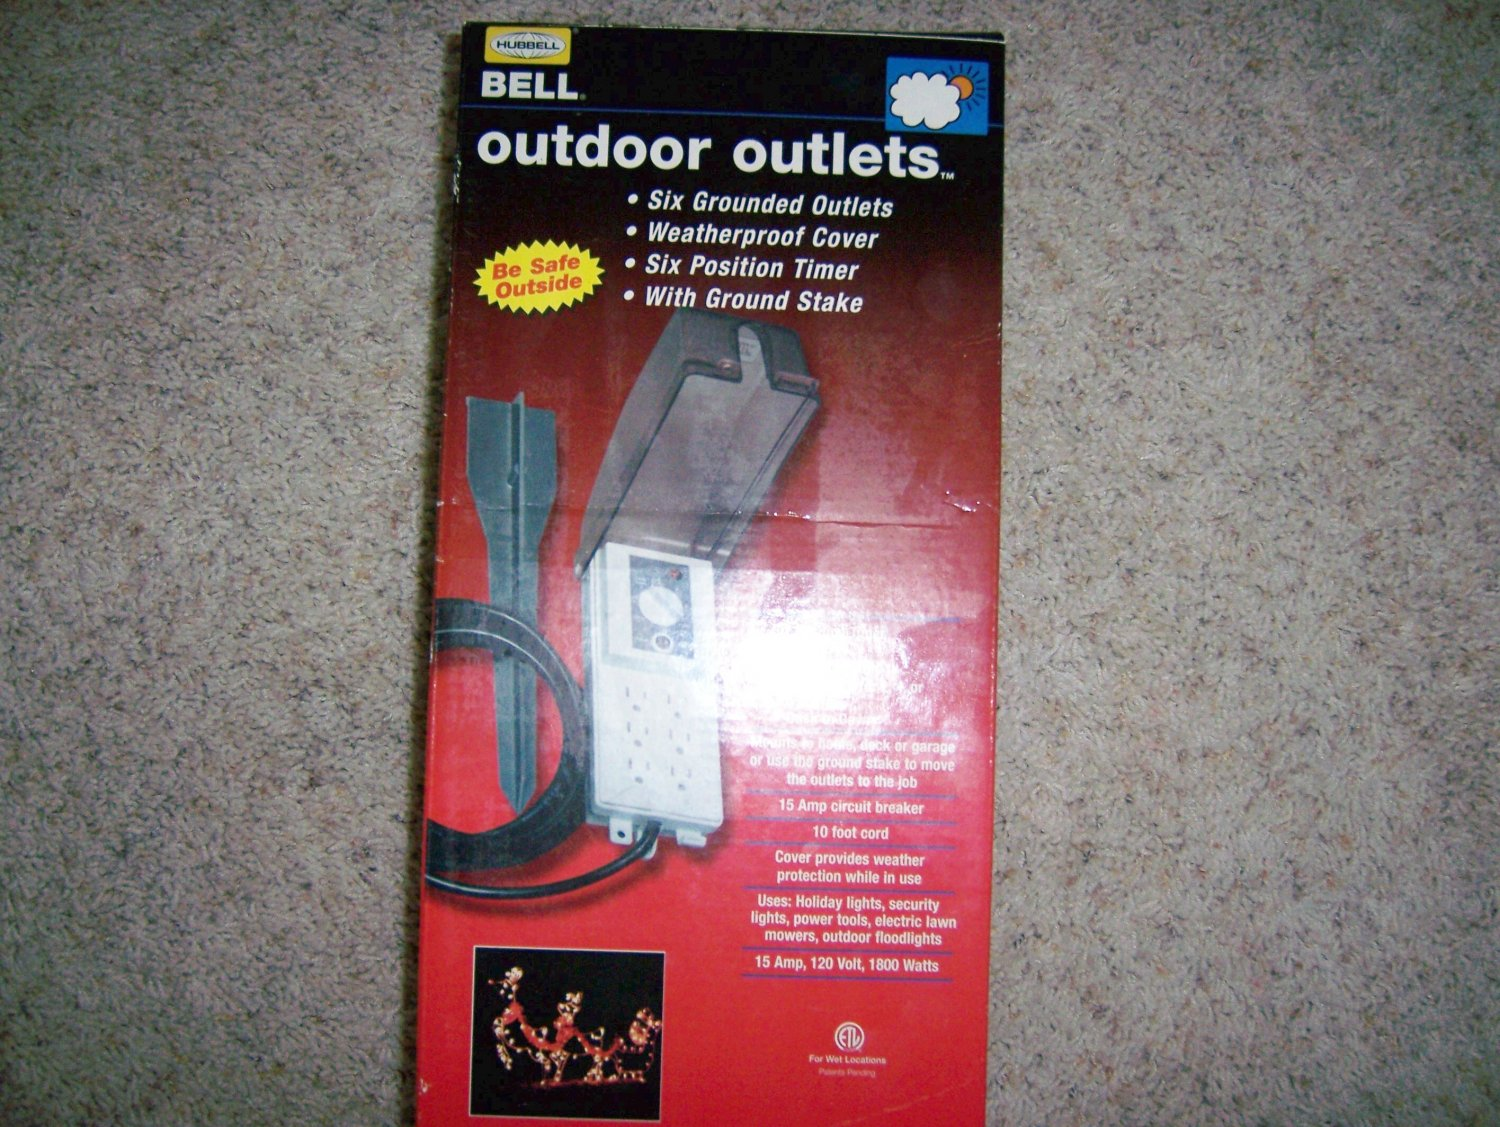 Out Door Outlets Hubell/Bell WeatherProof Grounded BNK901